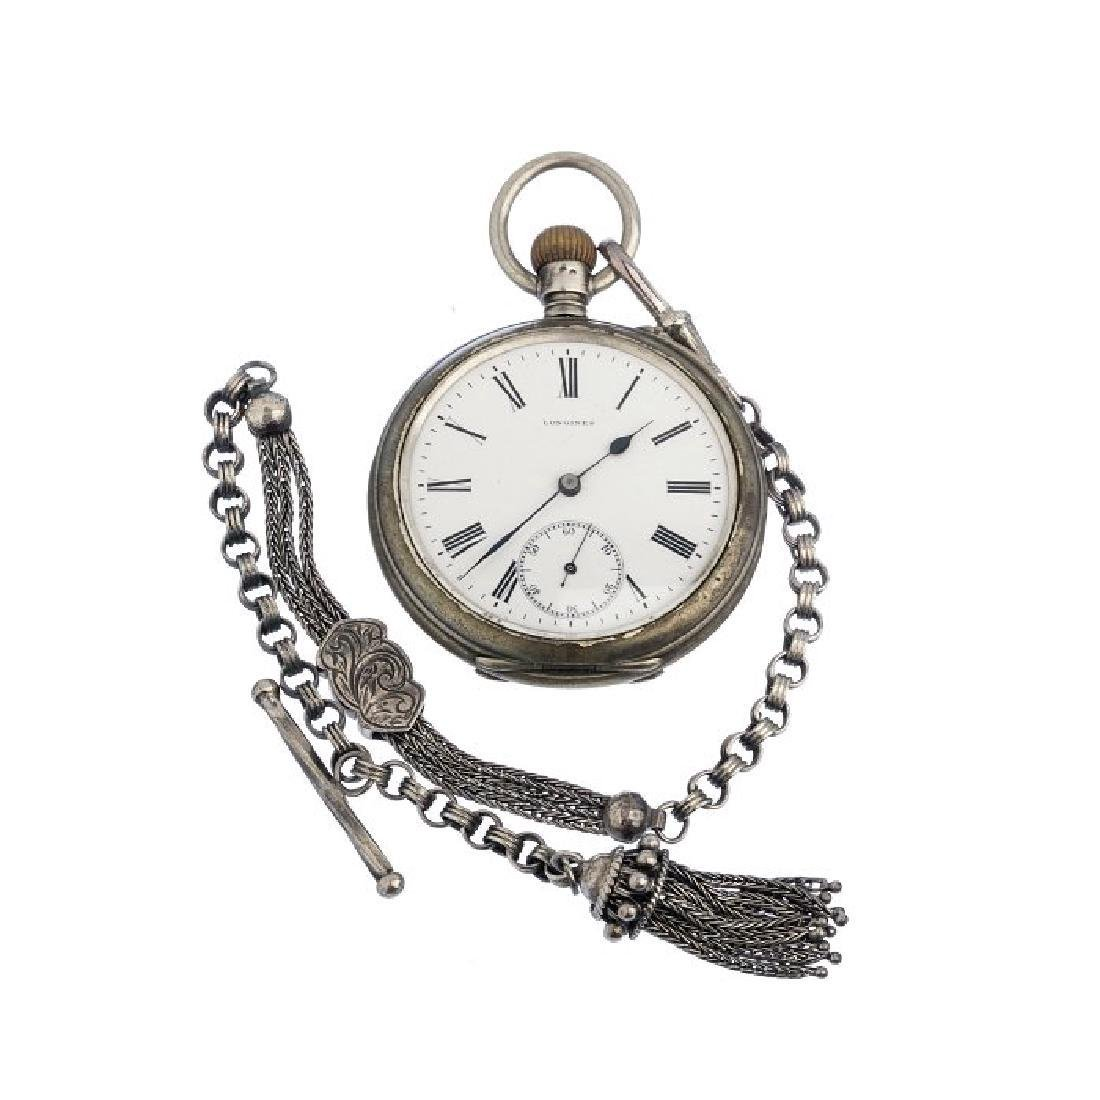 Vintage Longines Pocketwatch With Silver Chain 1910